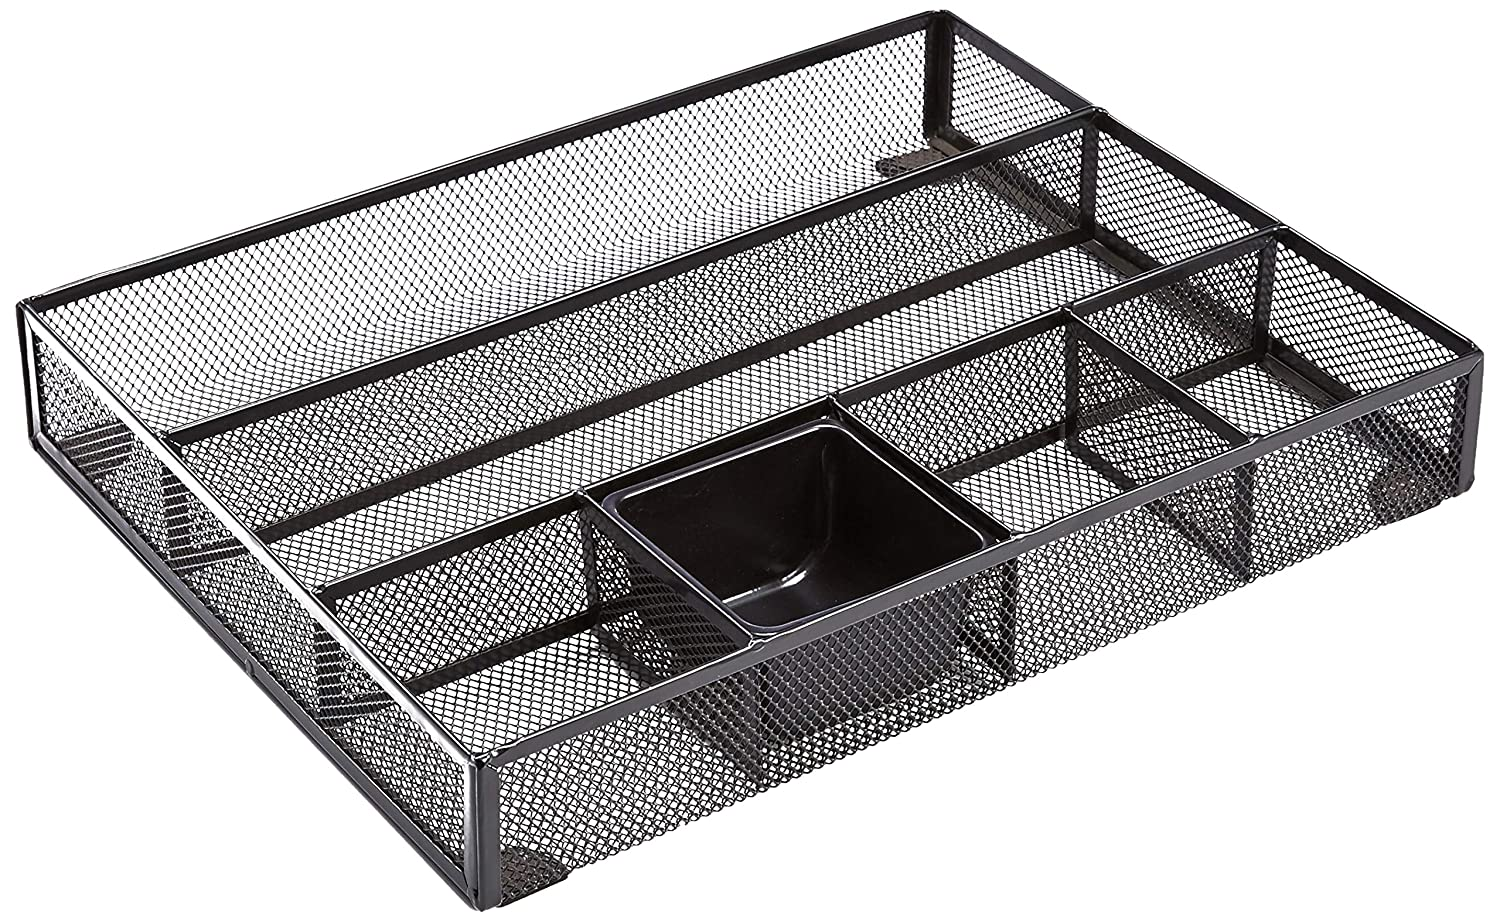 AmazonBasics Mesh Desk Drawer Office Organizer